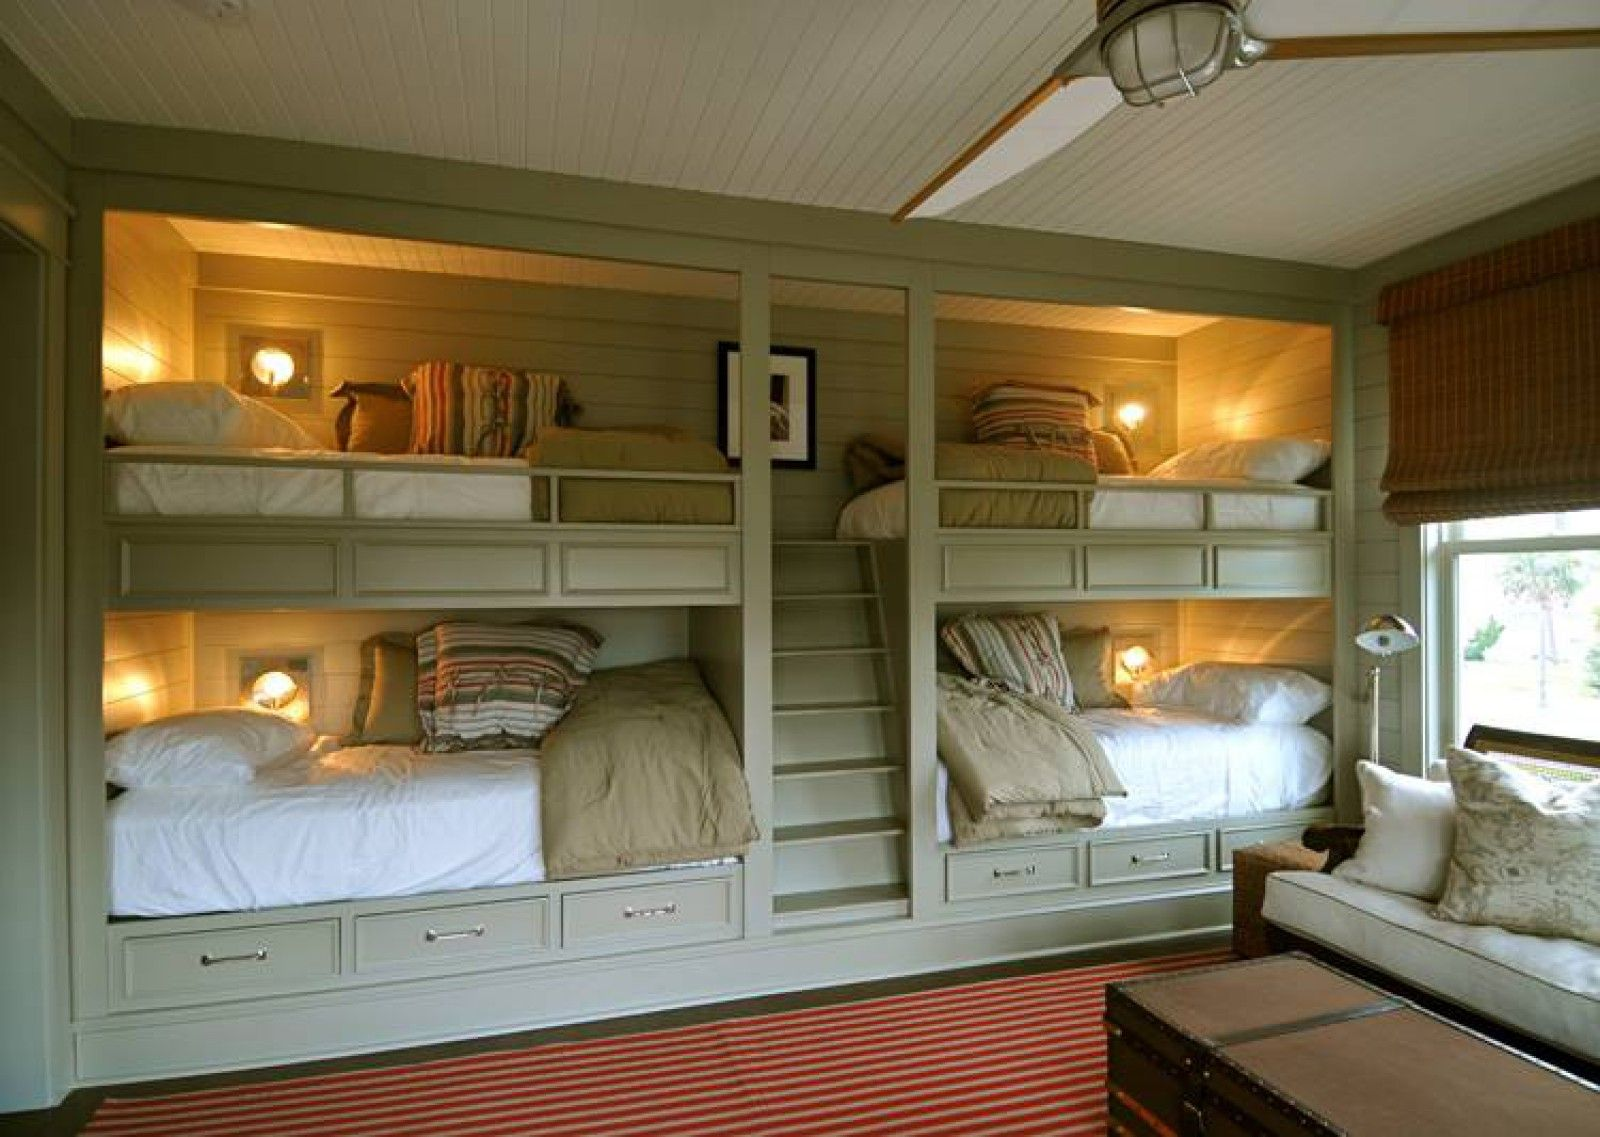 Superieur Double Bed Bunk Beds   Google Search